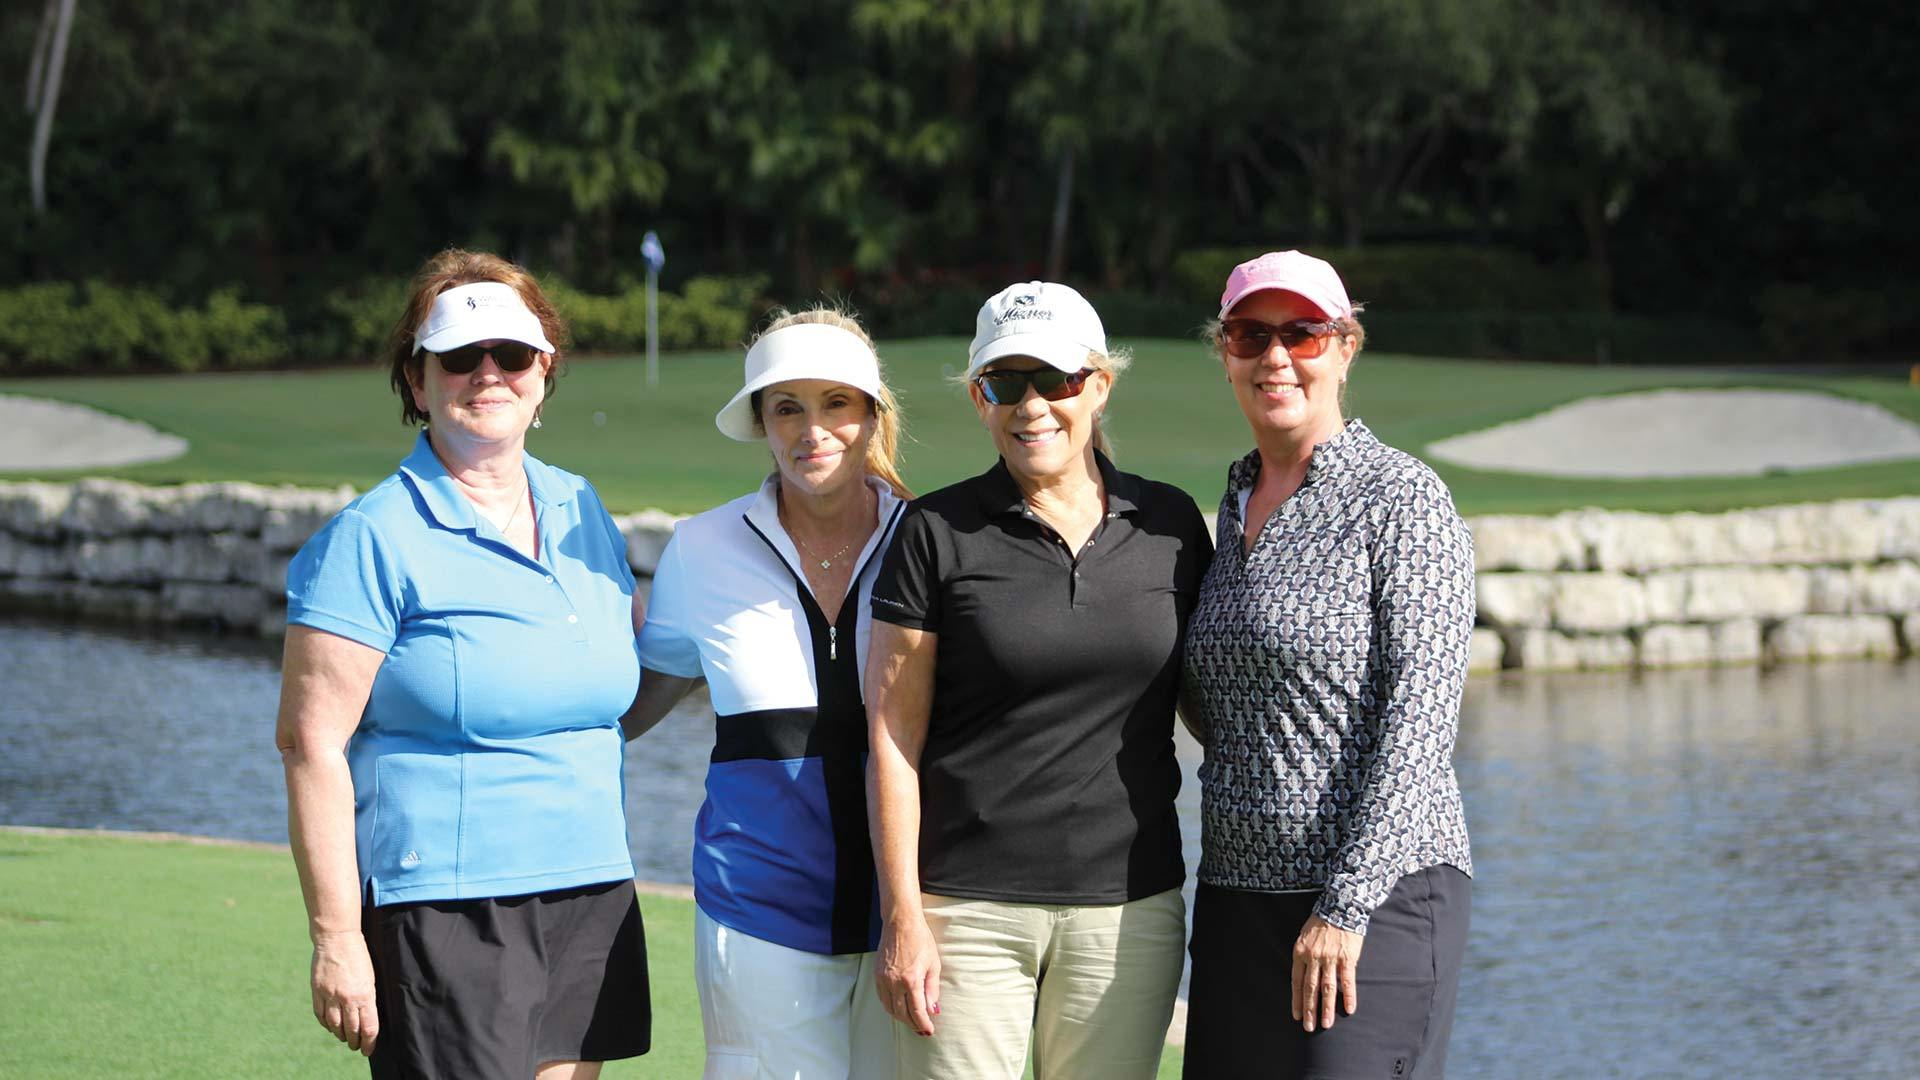 mizner-country-club-delray-beach-golf-images-10